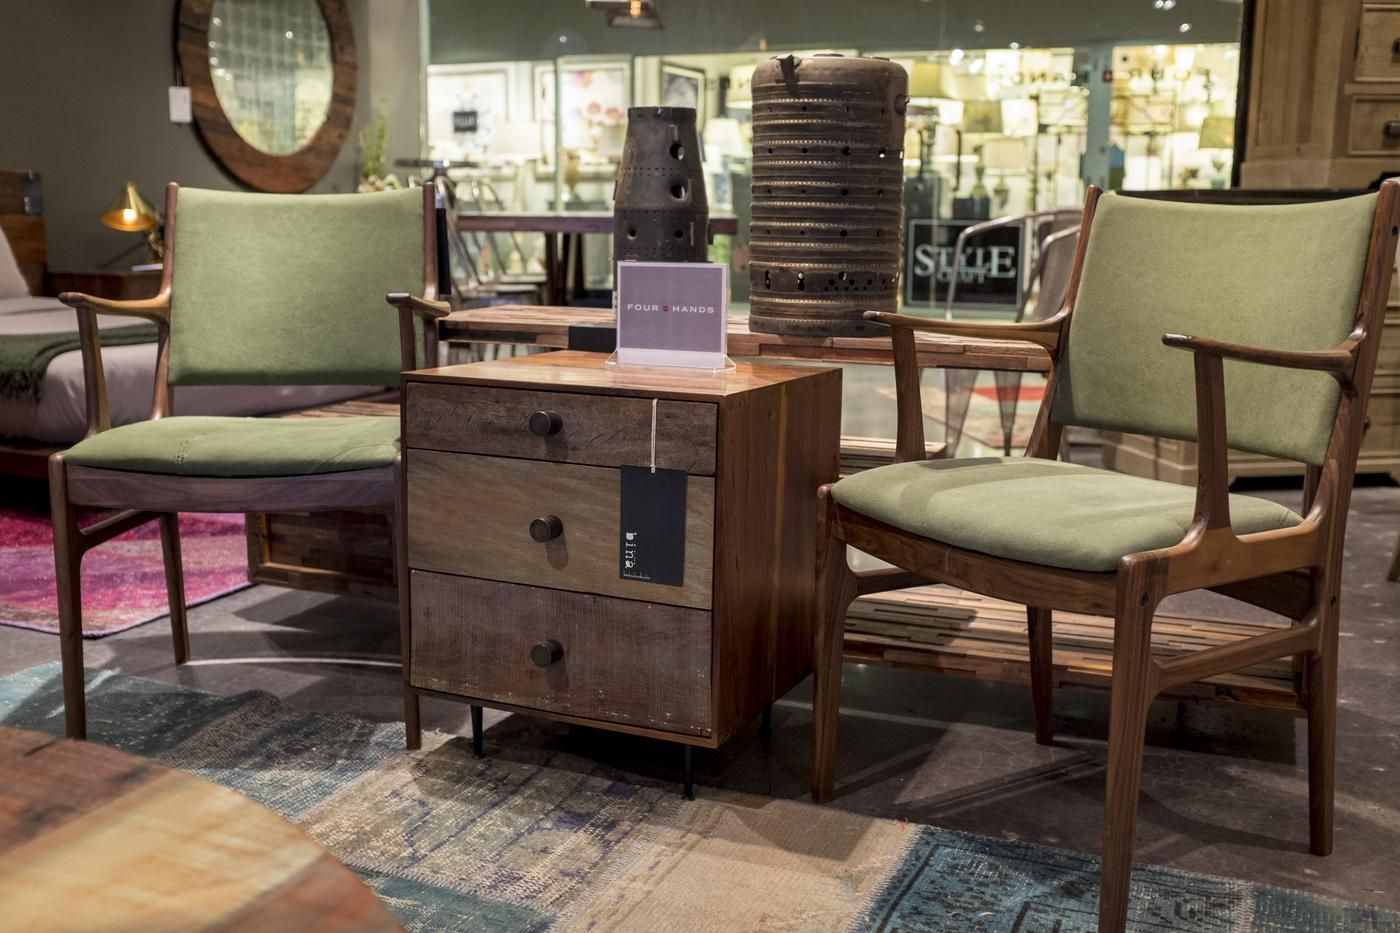 Bradens lifestyles furniture in knoxville tn offers the finest quality furniture at the lowest available price